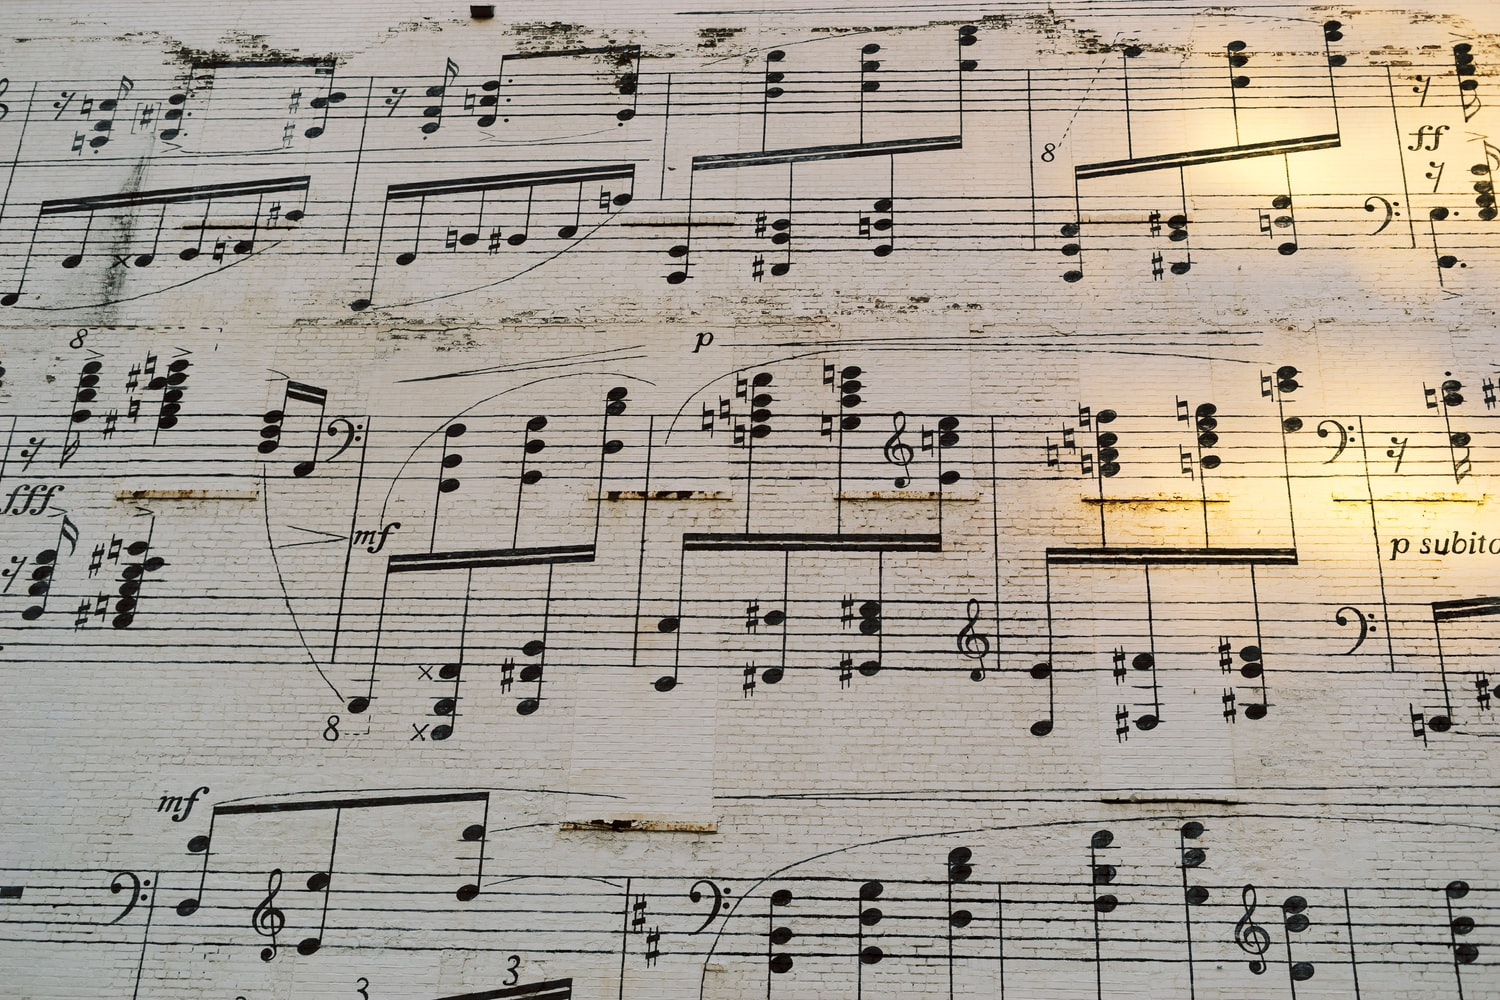 Sheet music with lots of complicated melodies, that is now how Melodic Intonation